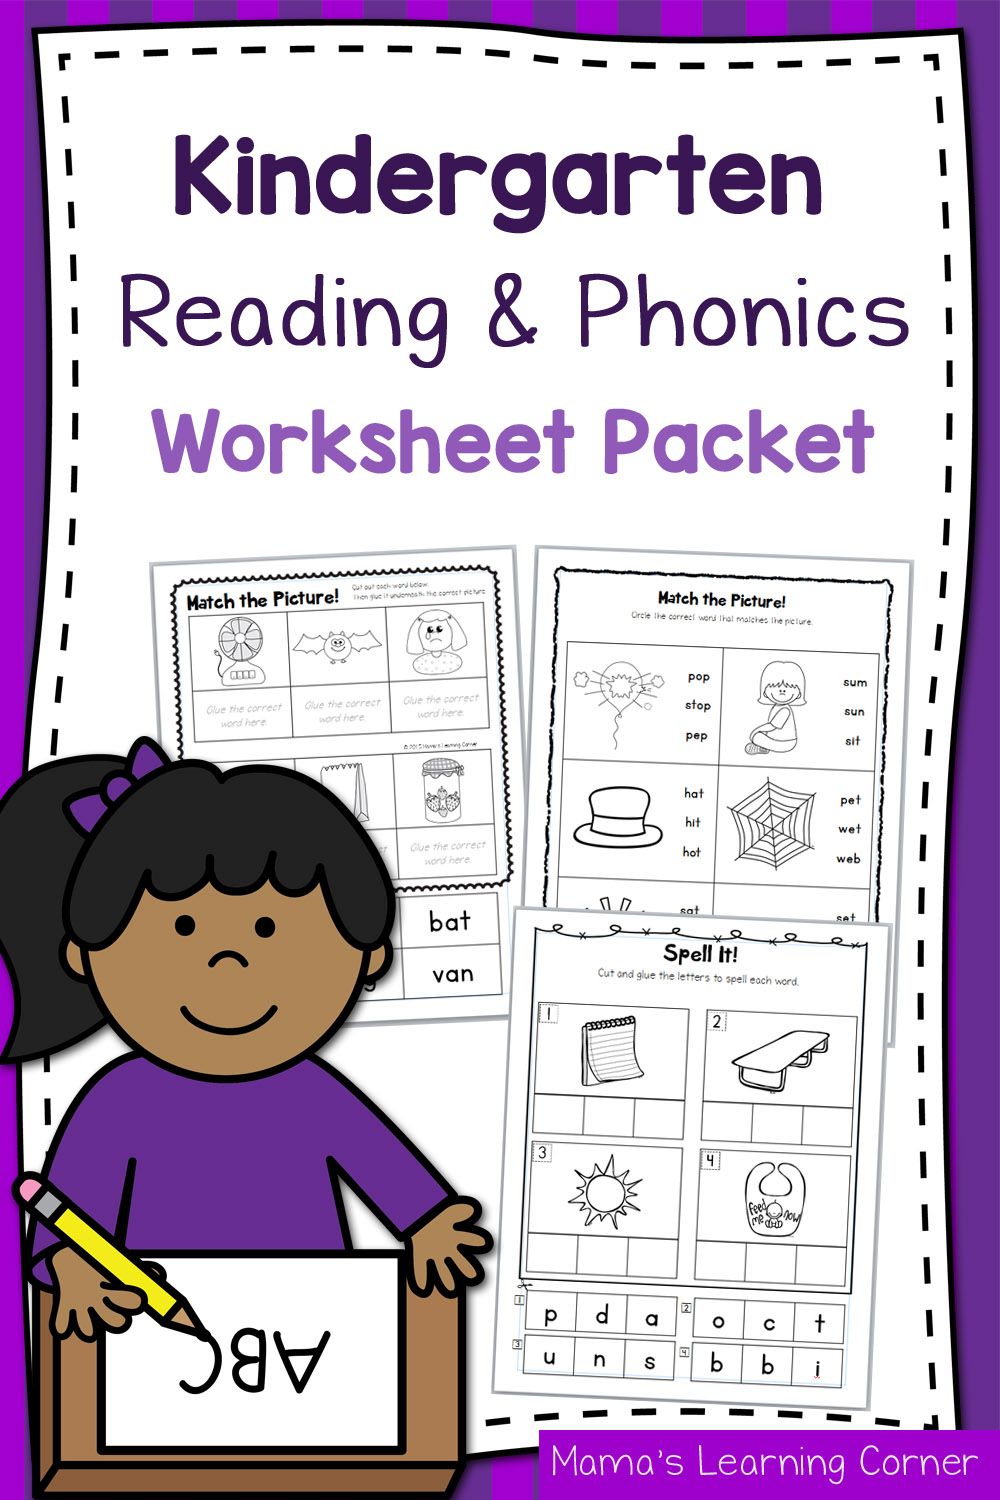 medium resolution of Kindergarten Reading and Phonics Worksheet Packet - Mamas Learning Corner